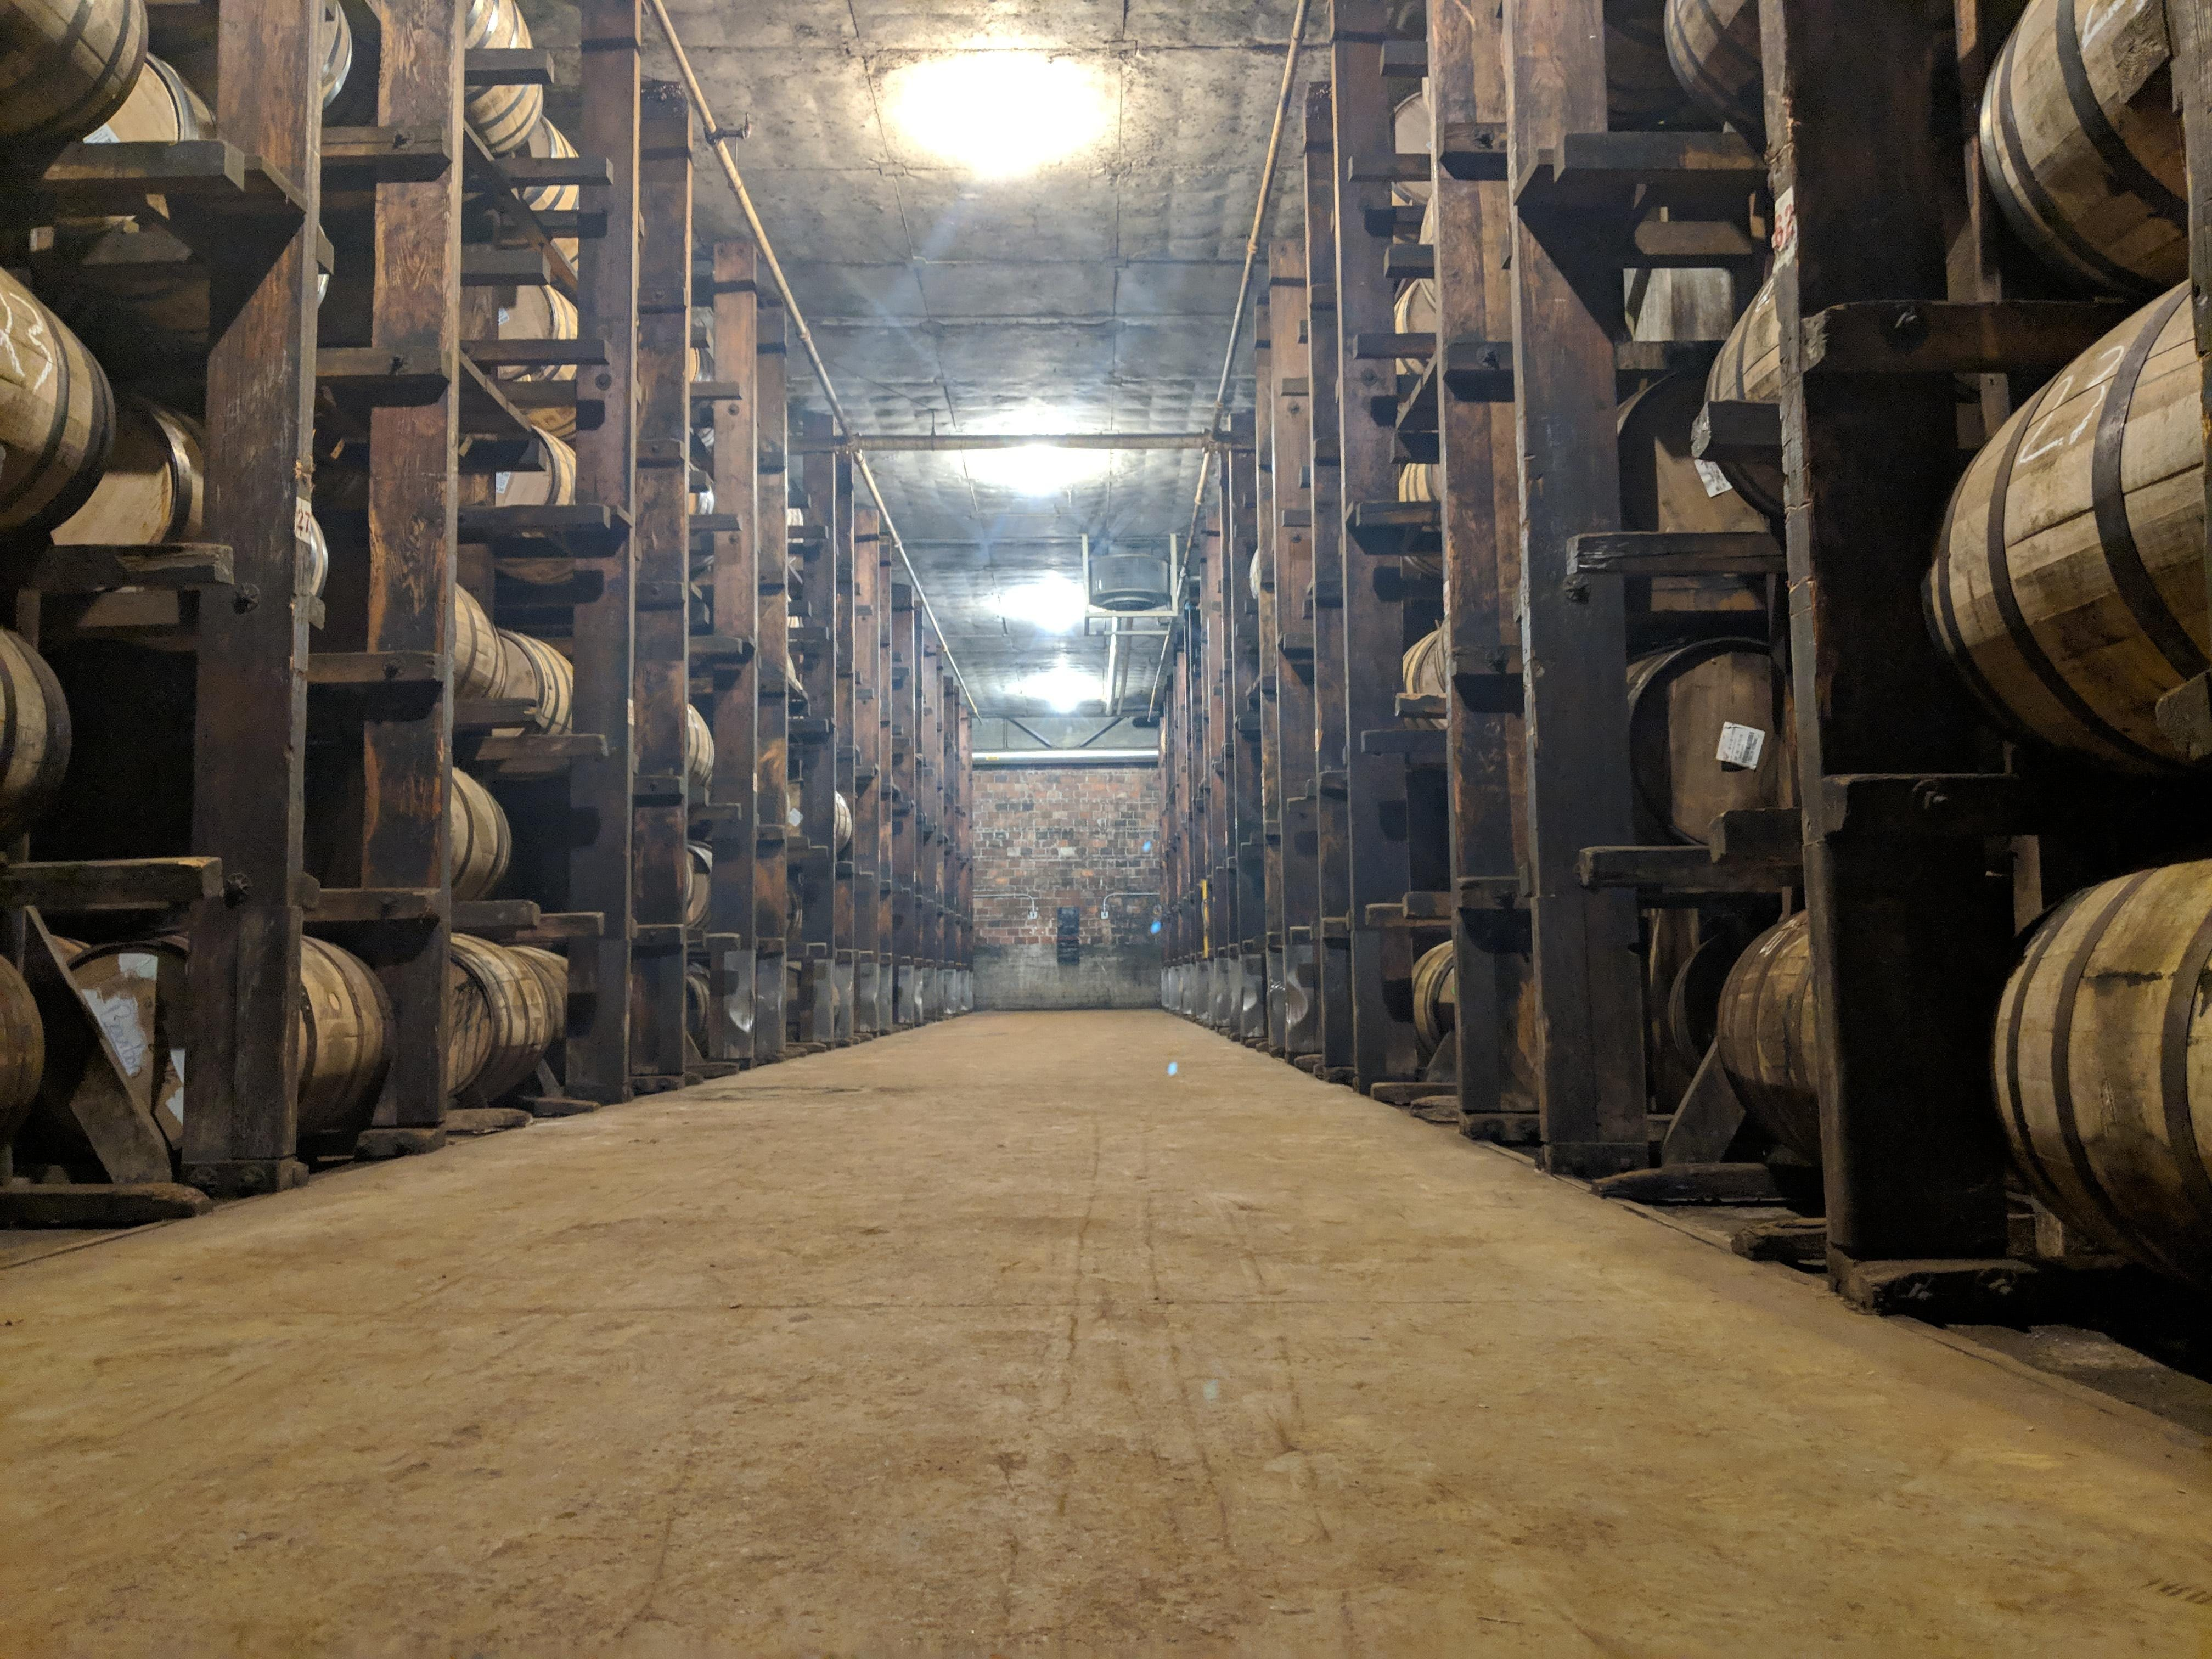 A rickhouse at the MGP distillery in Lawrenceburg, Indiana, just outside Cincinnati.